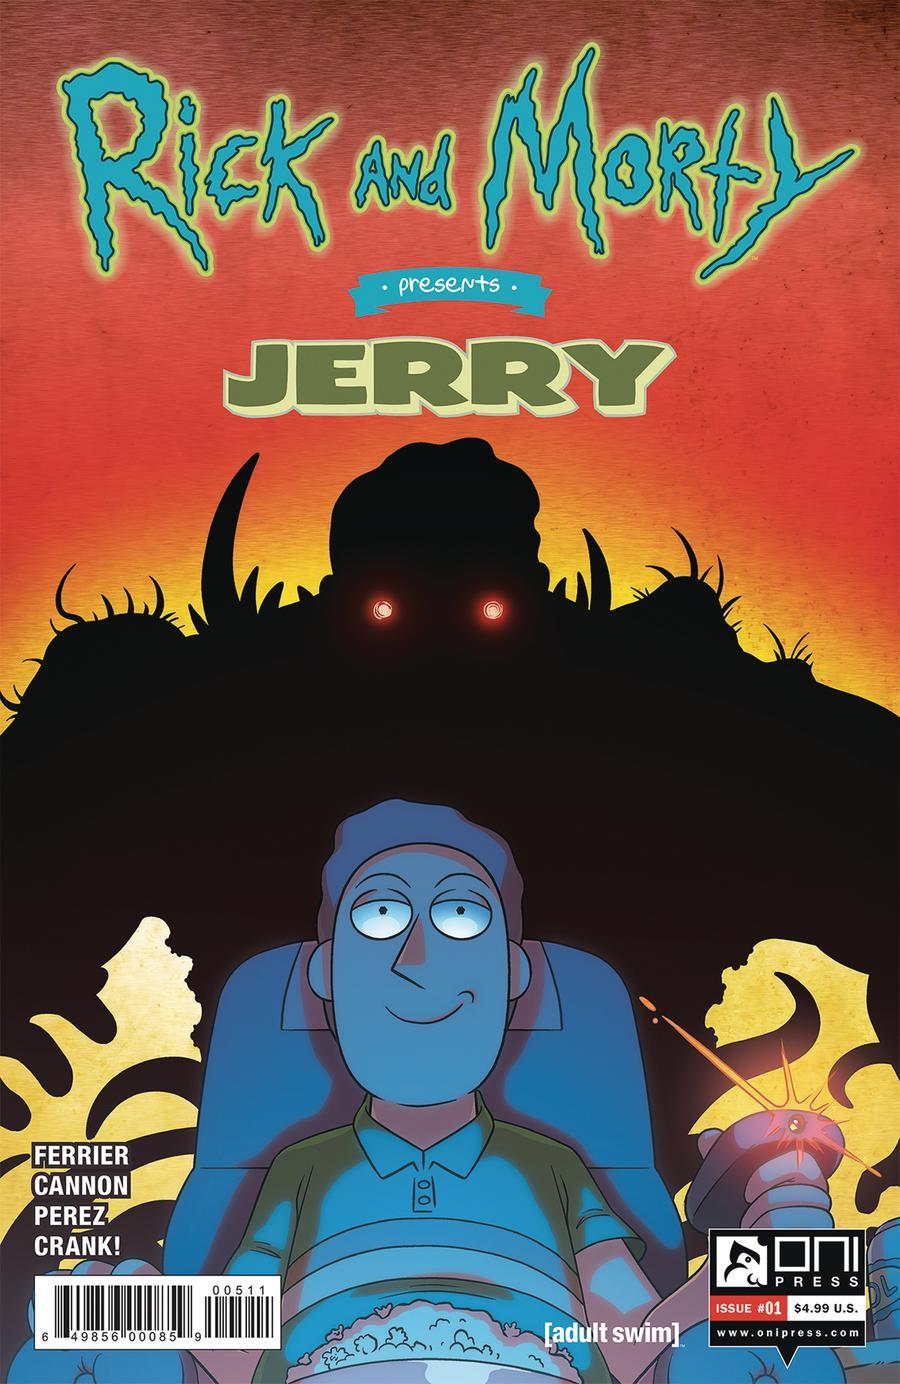 Rick And Morty Presents Jerry Vol. 1 #1